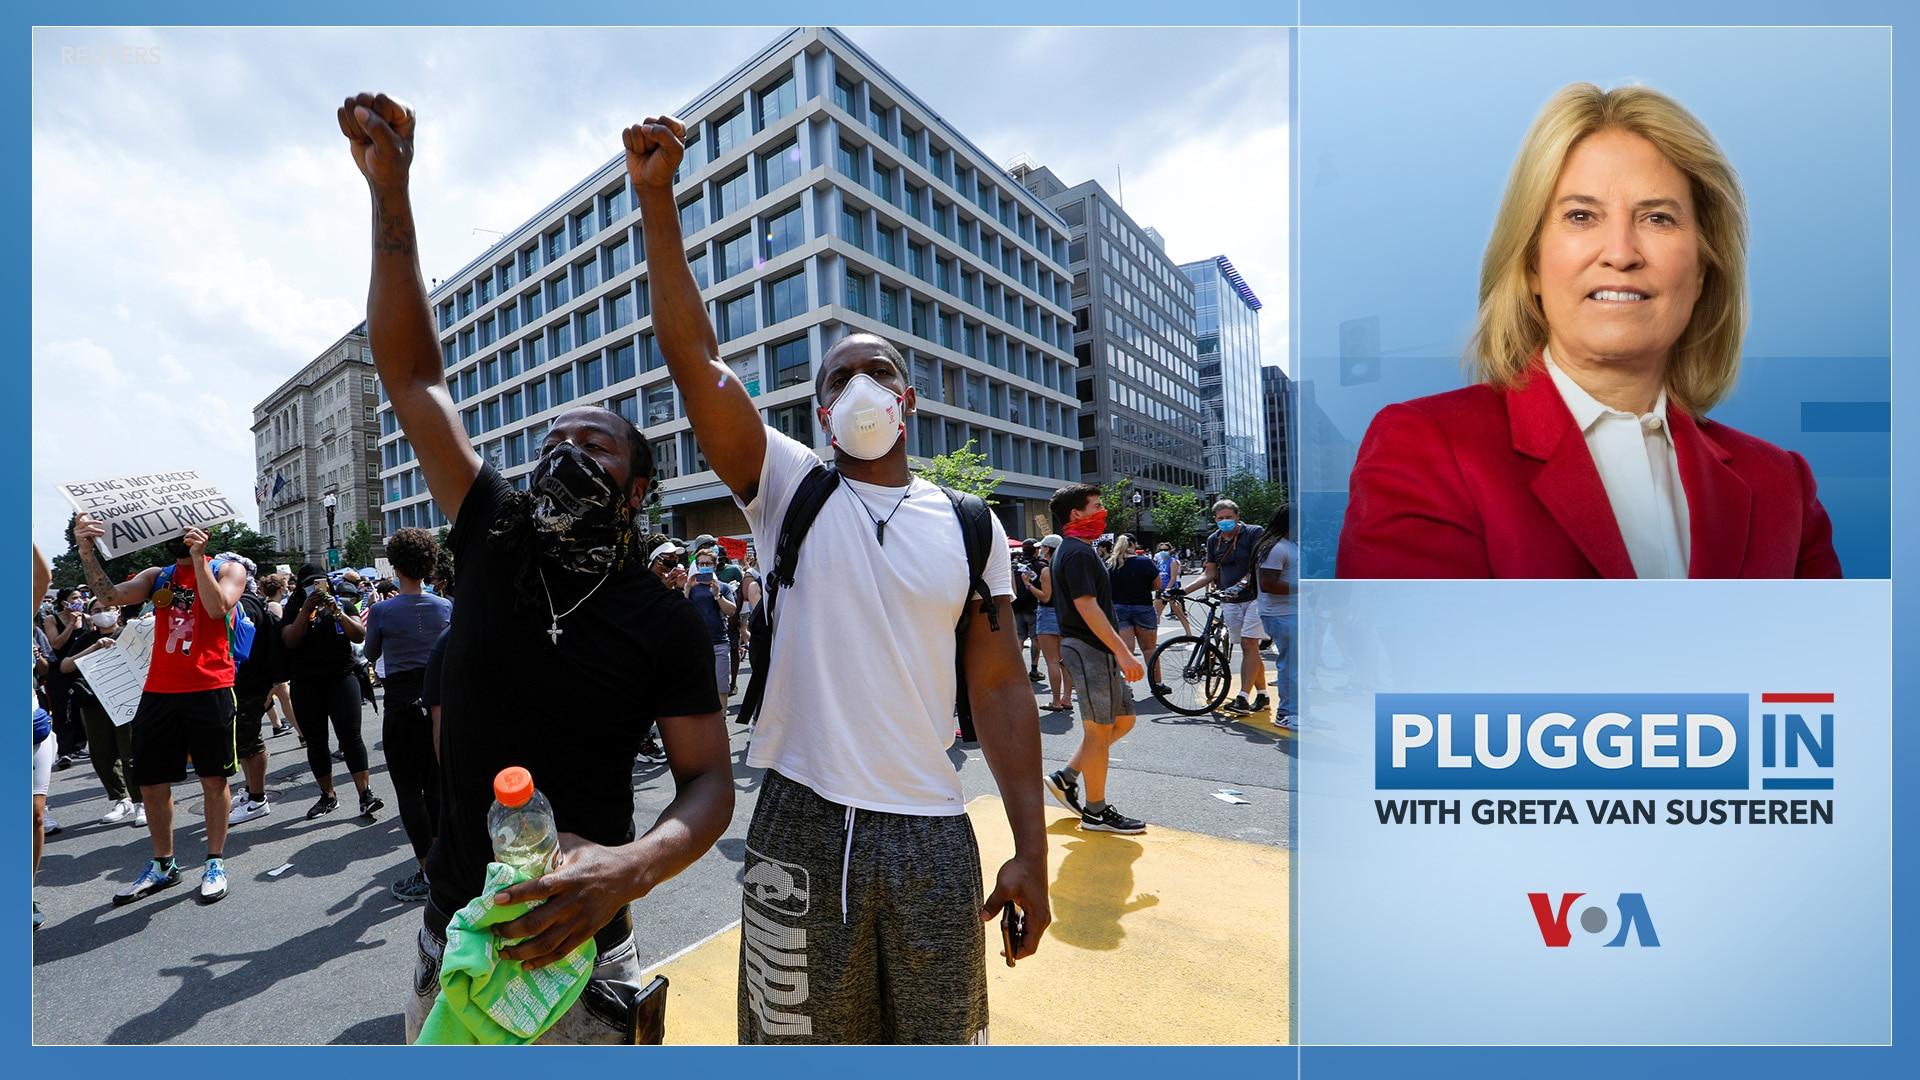 Plugged In with Greta Van Susteren-Protests in the Age of COVID-19